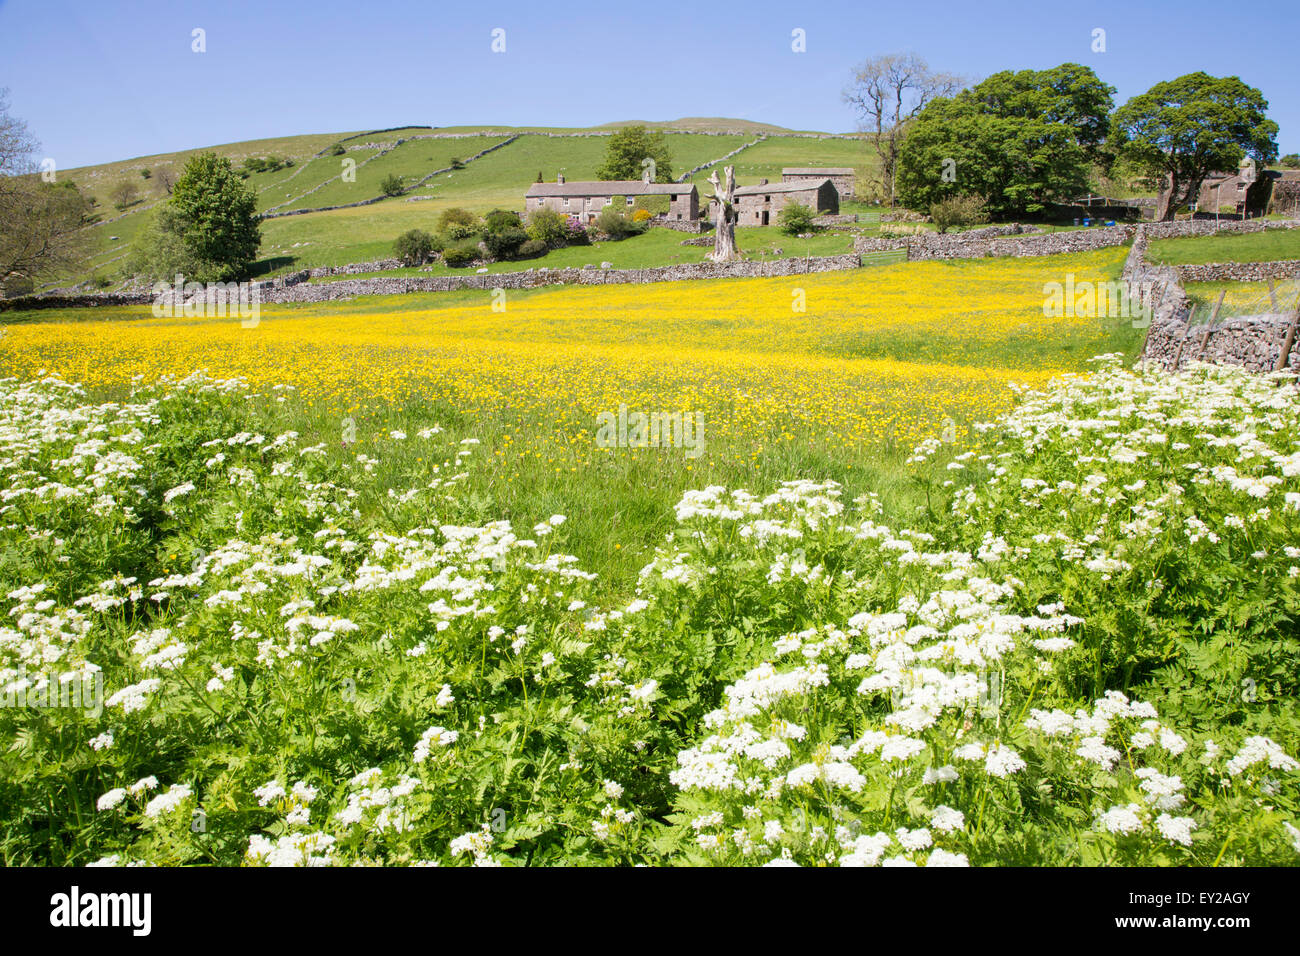 Traditional stone Dales farmhouse in Wharfdale, Yorkshire Dales National Park, North Yorkshire, England, UK - Stock Image